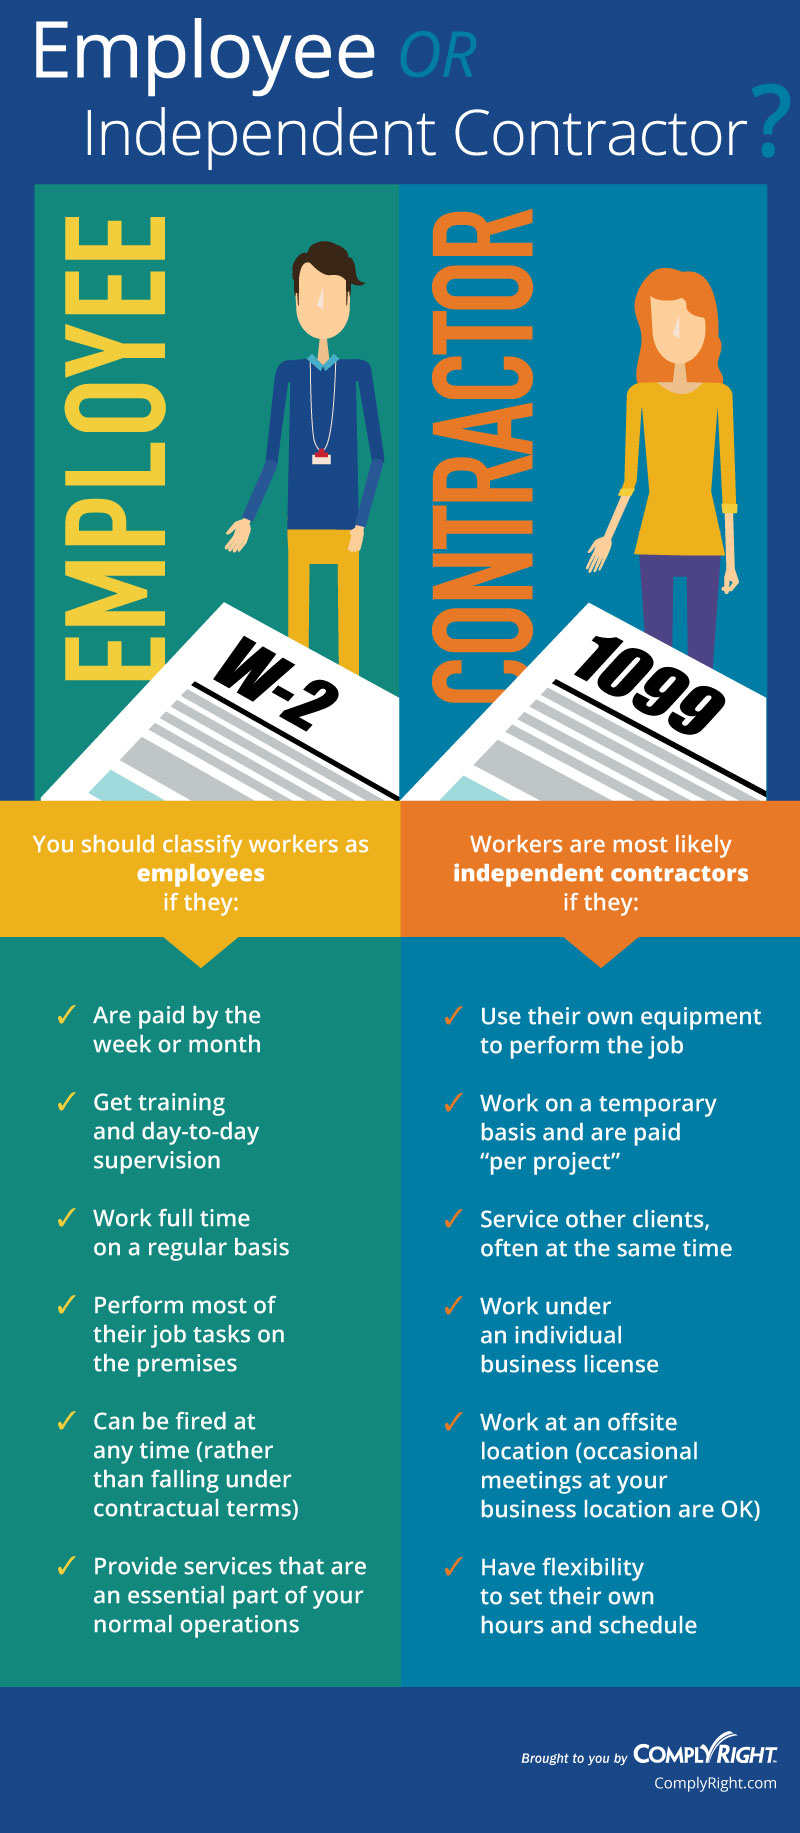 Here are some clear worker classification criteria regarding who is an independent contractor versus an employee.